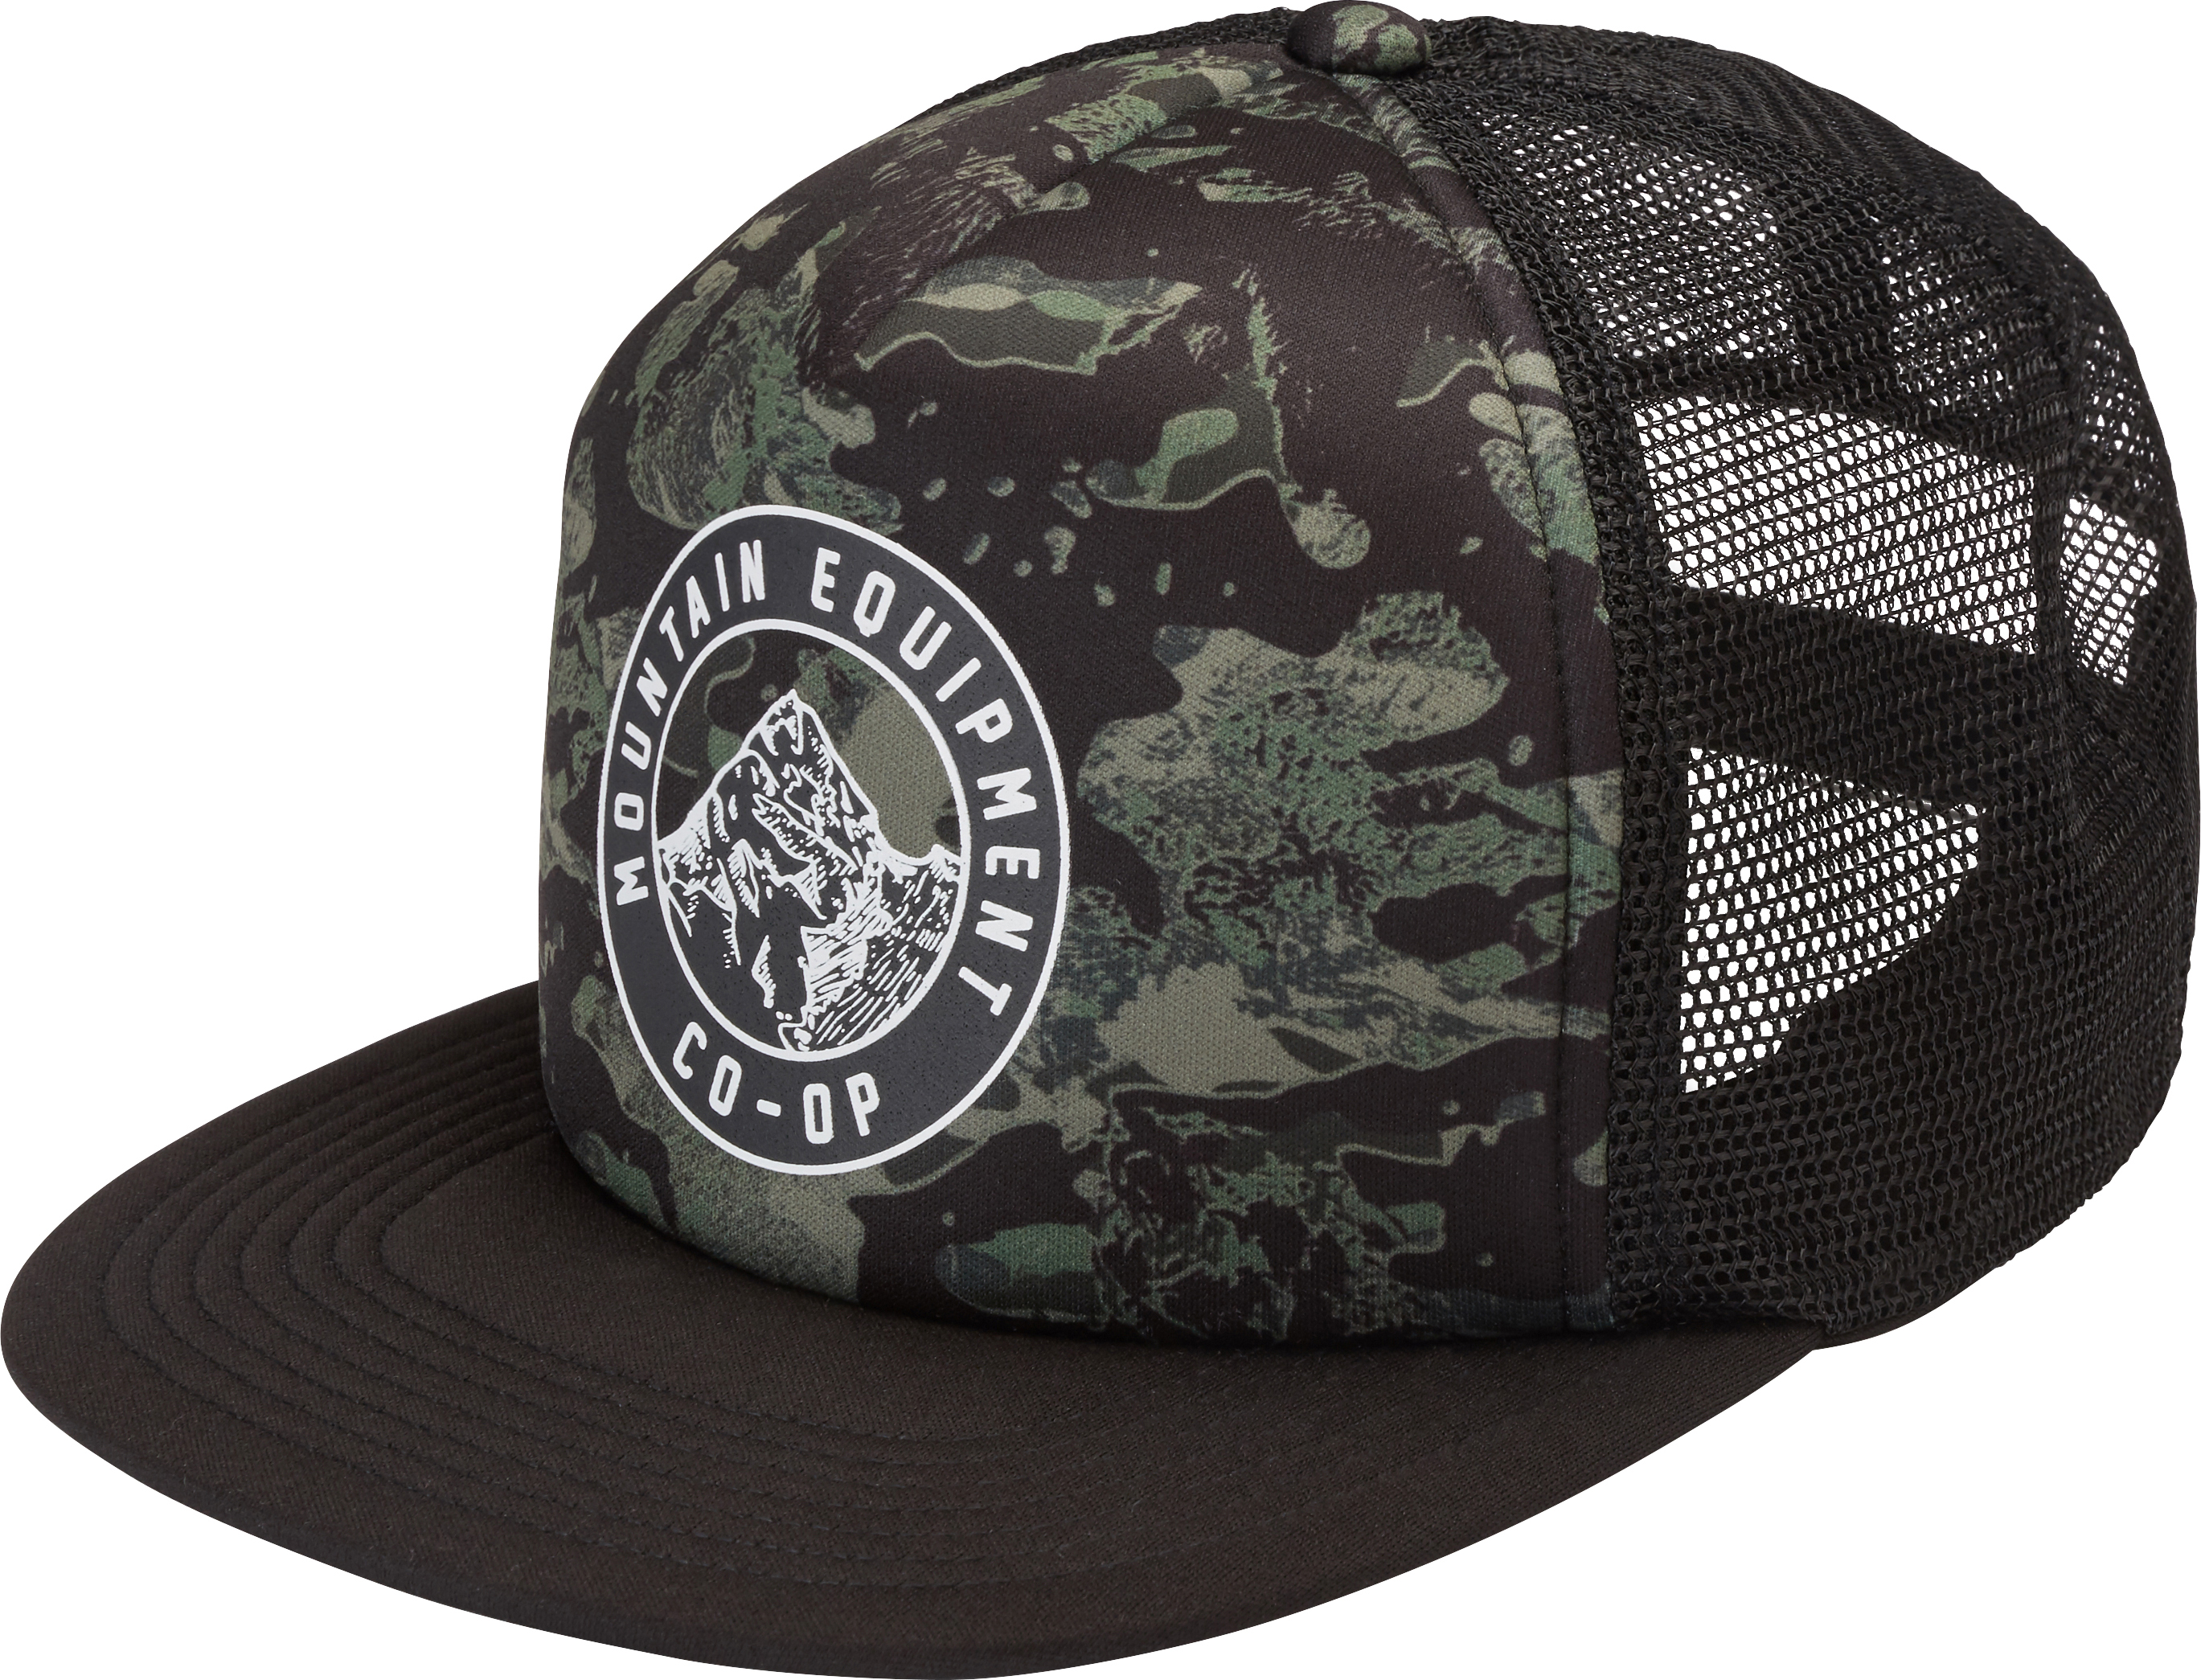 7ecb4558f68 MEC Parkside Trucker Hat - Children